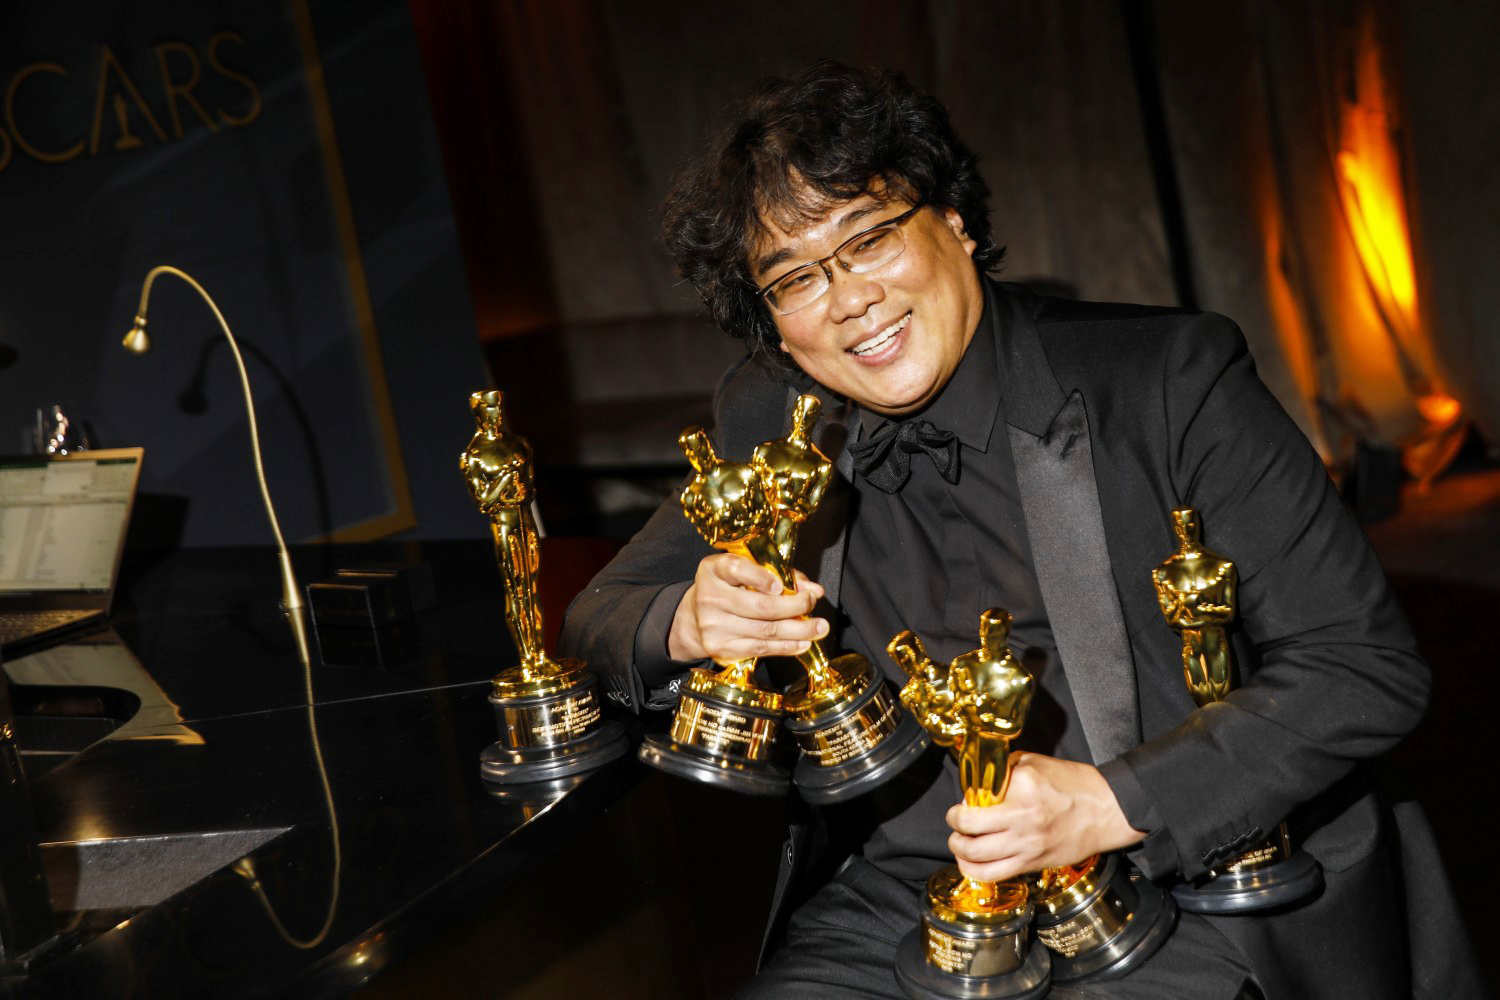 """HOLLYWOOD, CA – February 9, 2020: Bong Joon Ho, winner of the director Oscar and international feature Oscar for """"Parasite"""" at the Academy Awards Governors Ball on Sunday, February 9, 2020 at the Dolby Theatre at Hollywood & Highland Center in Hollywood, CA."""